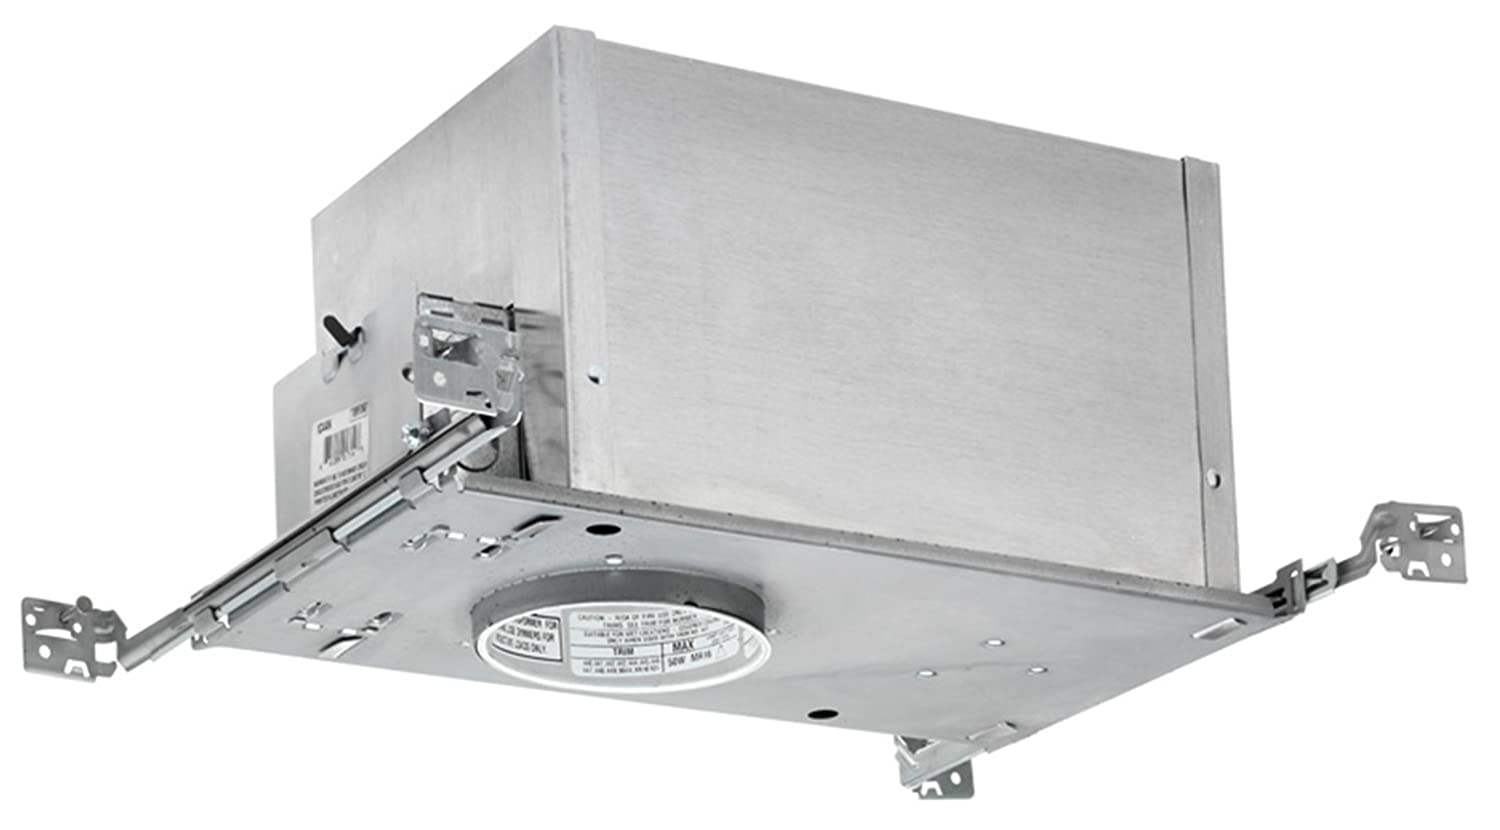 Wac lighting hr hl 4 low voltage new construction housing recessed can light - Juno Lighting Ic44n 4 Inch Ic Rated Low Voltage New Construction Recessed Housing Recessed Light Fixture Housings Amazon Com